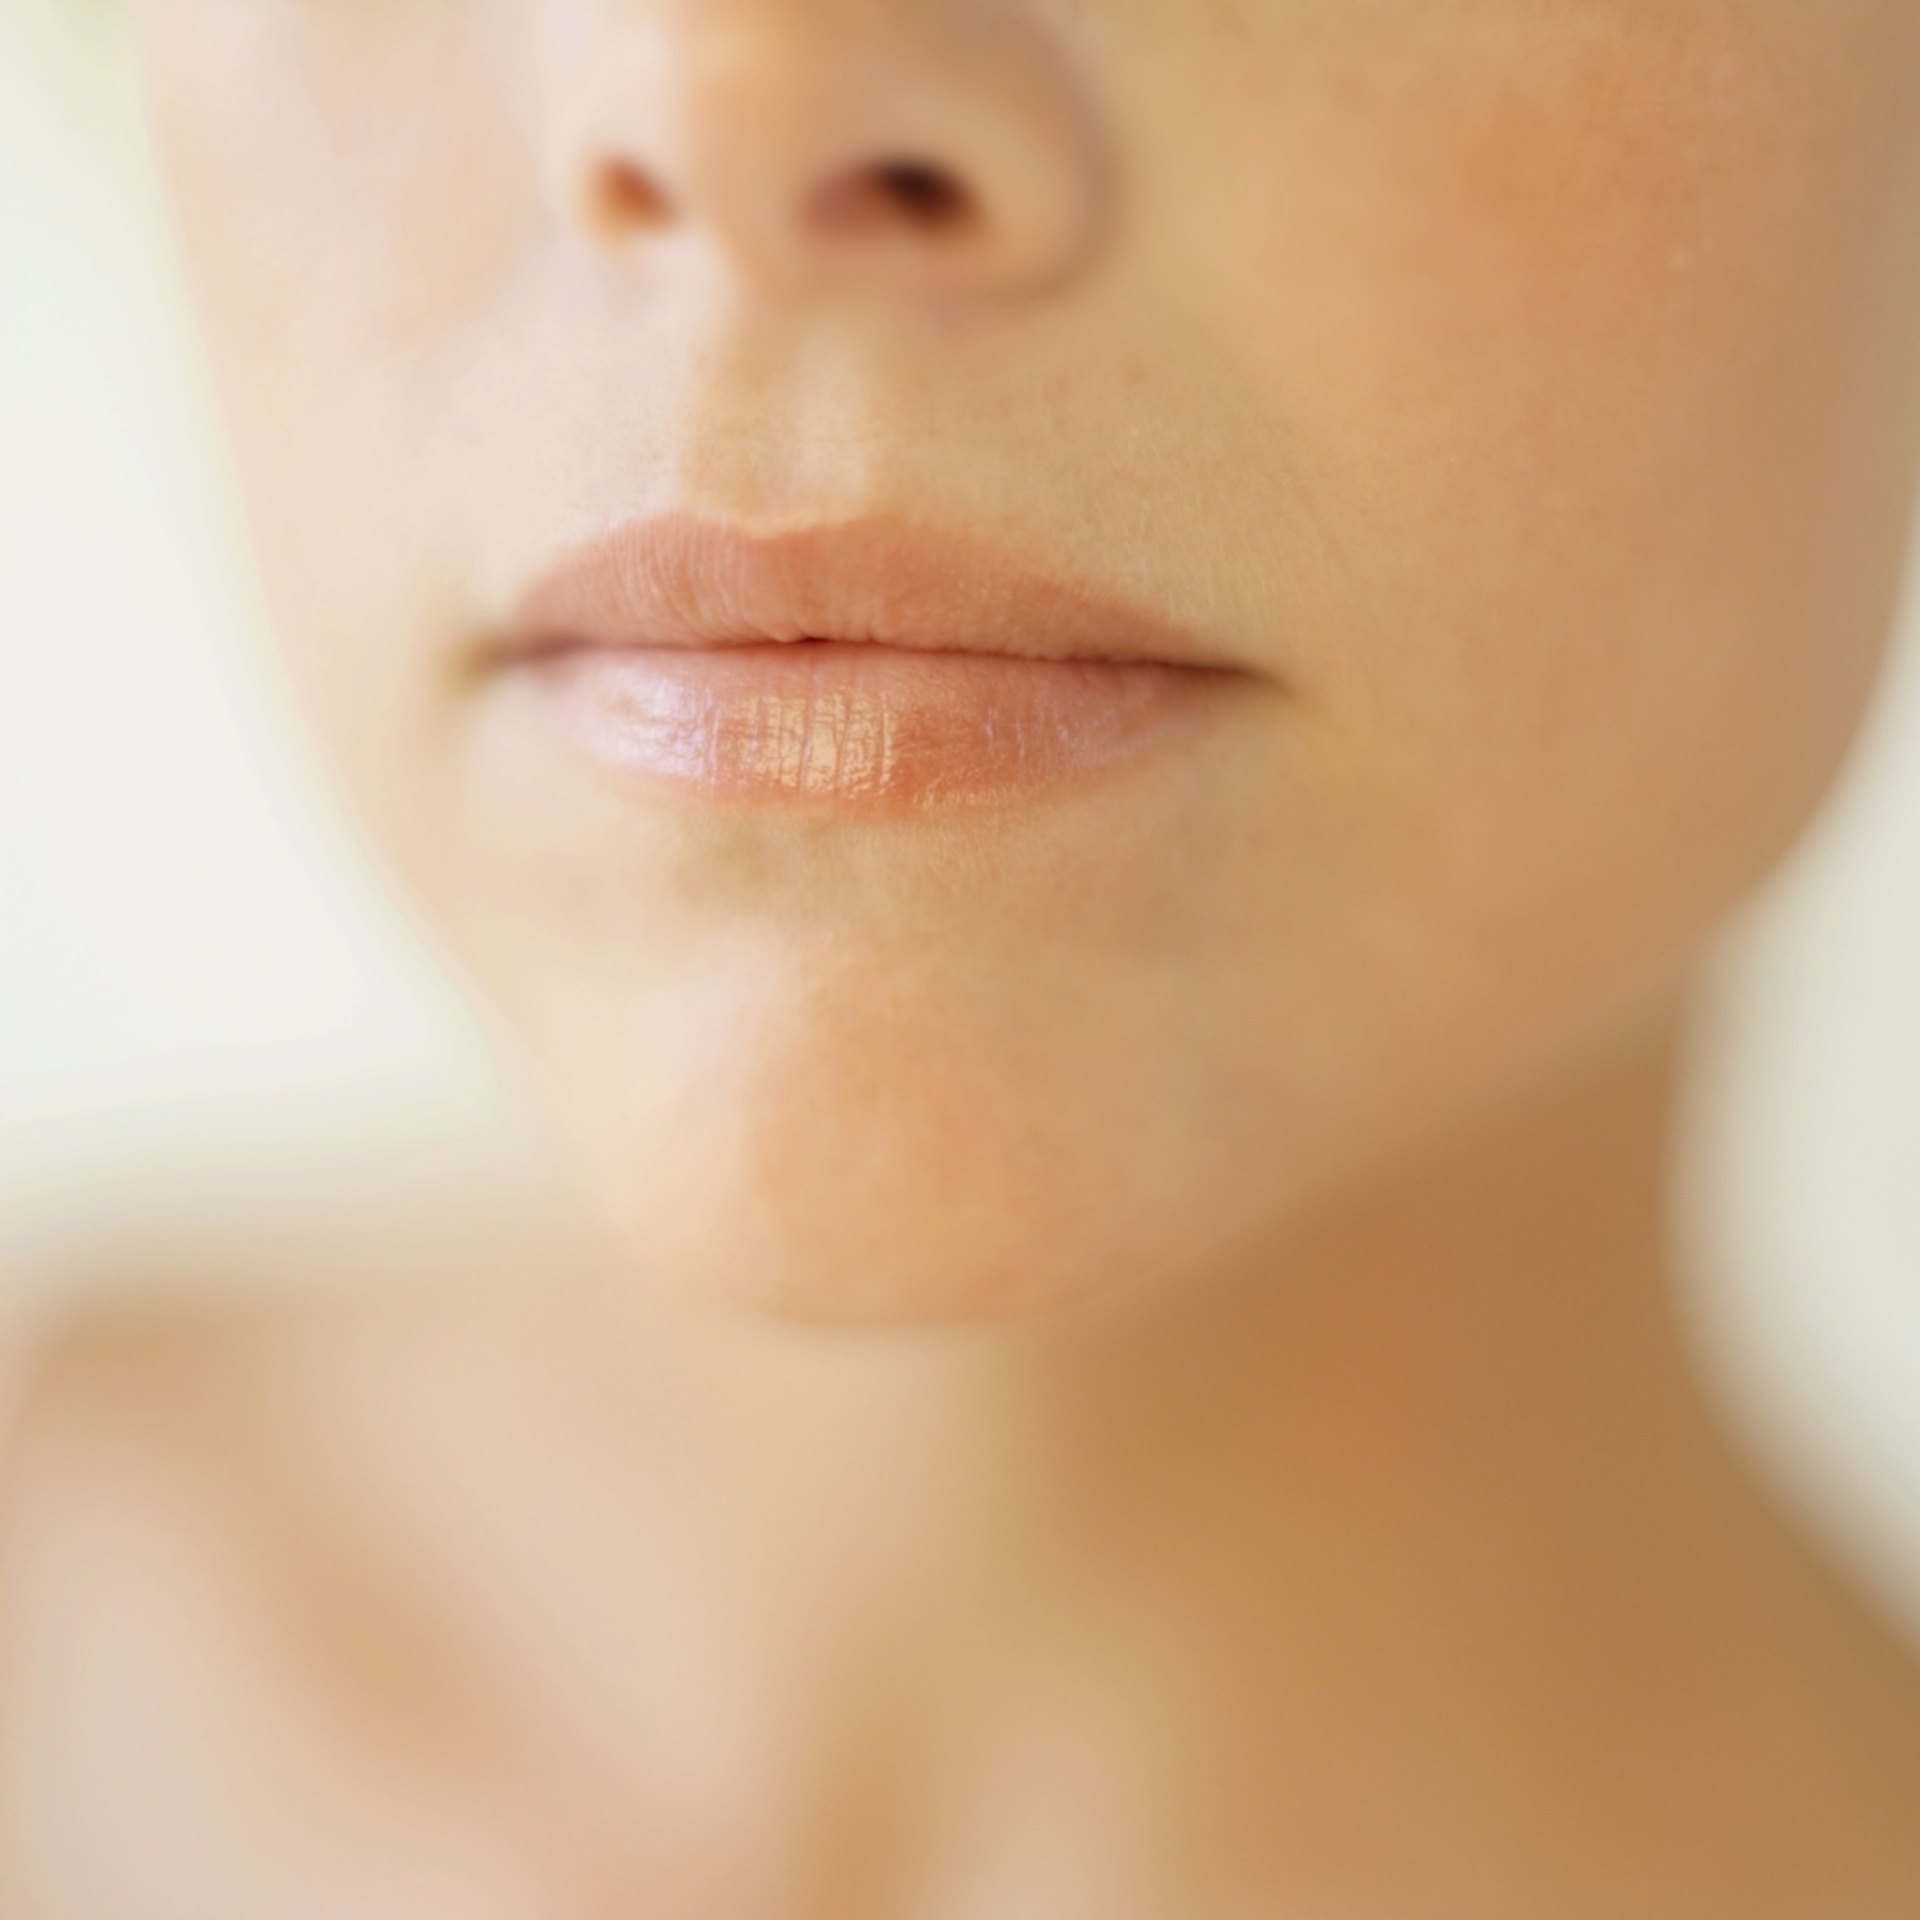 How to treat lip cancer